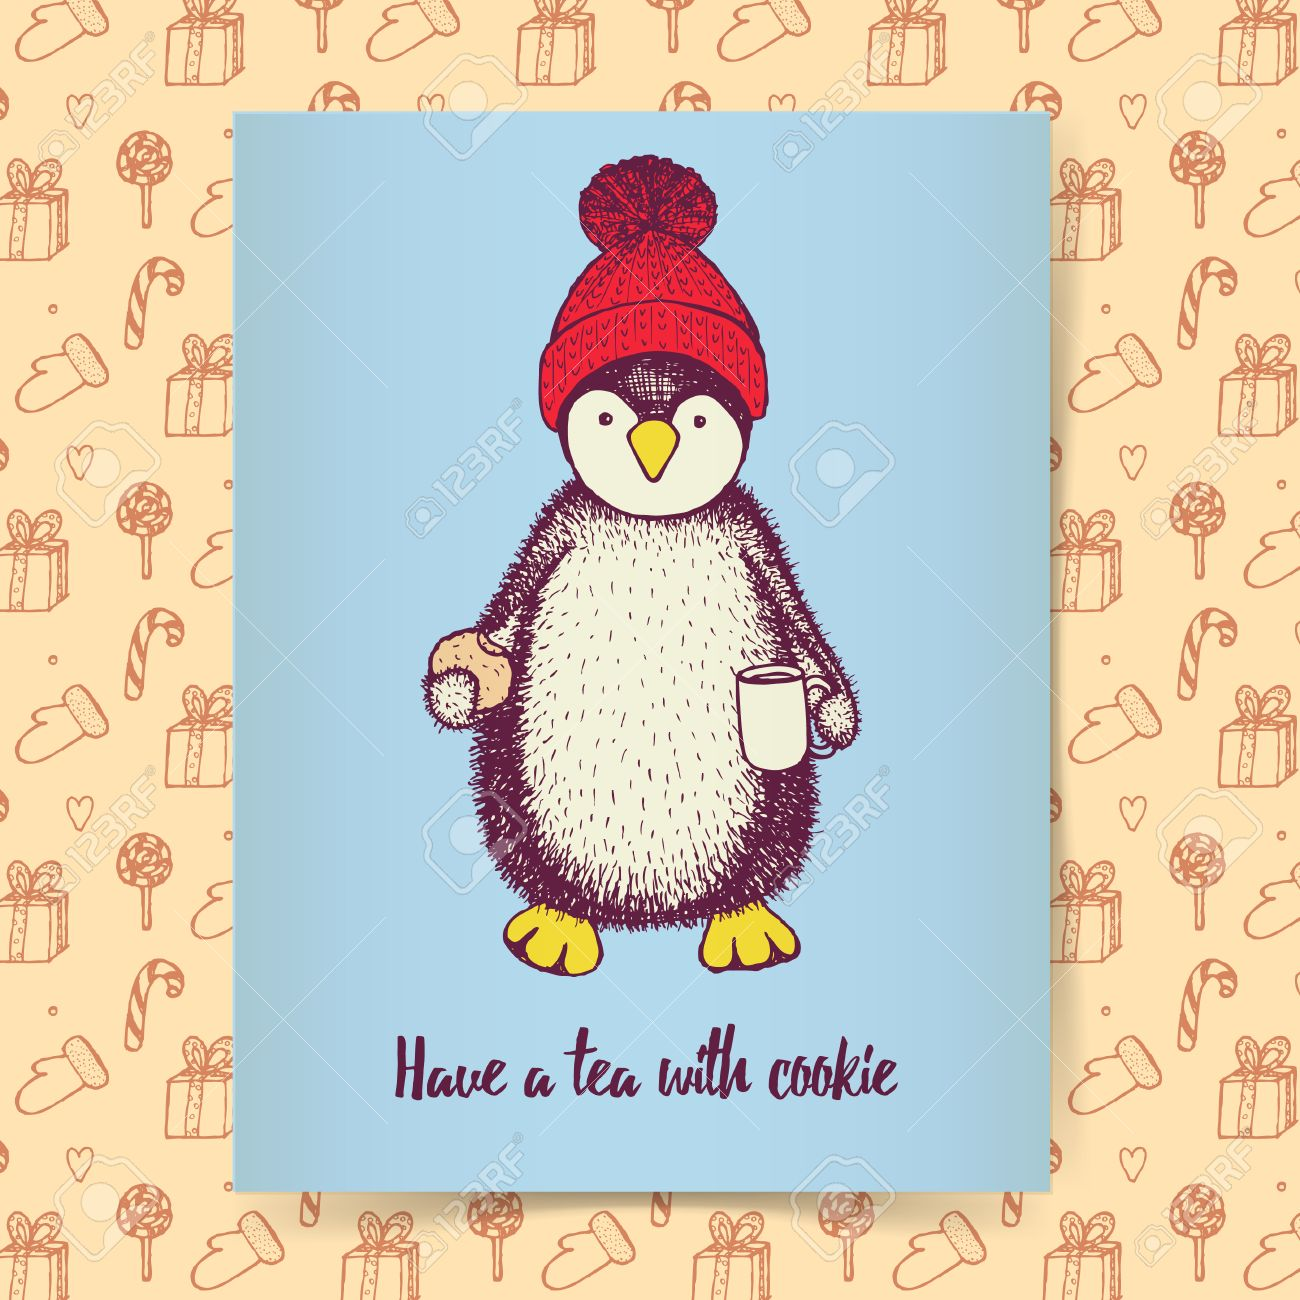 sketch pinguin in hat cup of tea and cookie in vintage style sketch pinguin in hat cup of tea and cookie in vintage style christmas poster